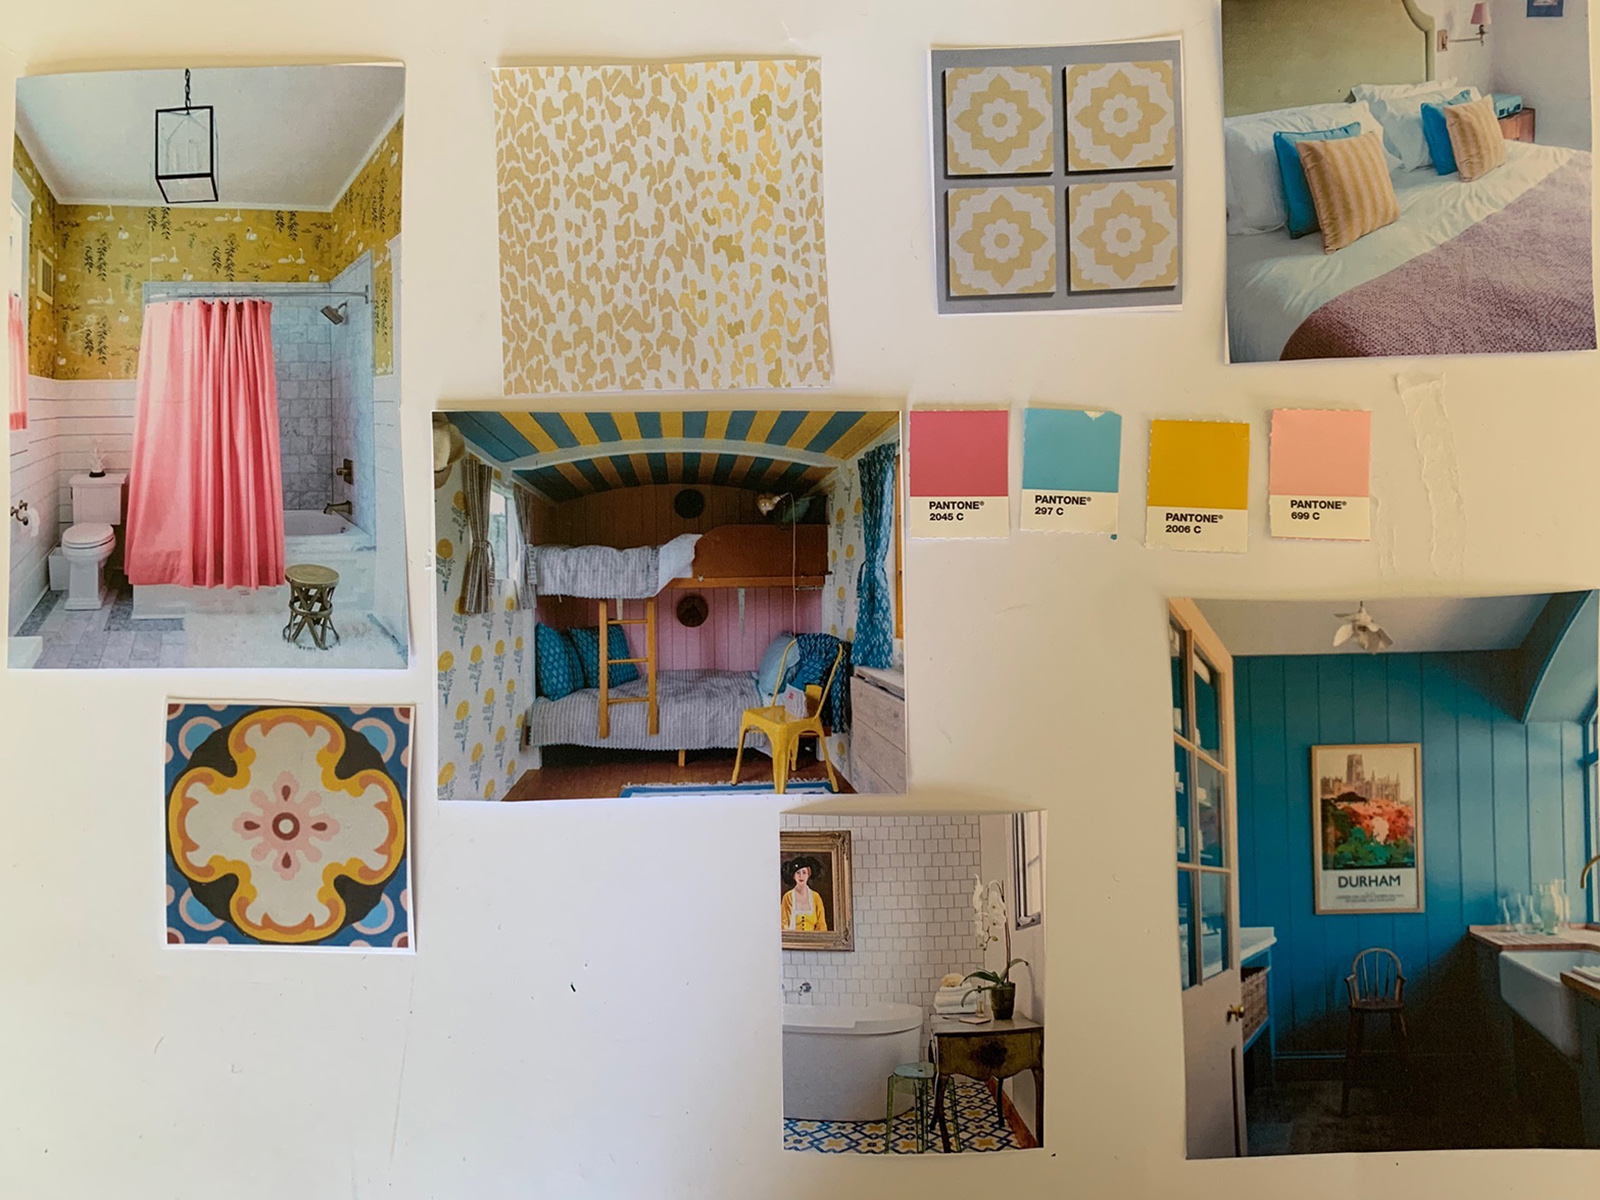 Bathroom mood board featuring yellow patterned tiles, blue panelled walls and pink swatches by Interior designer Sophie Robinson